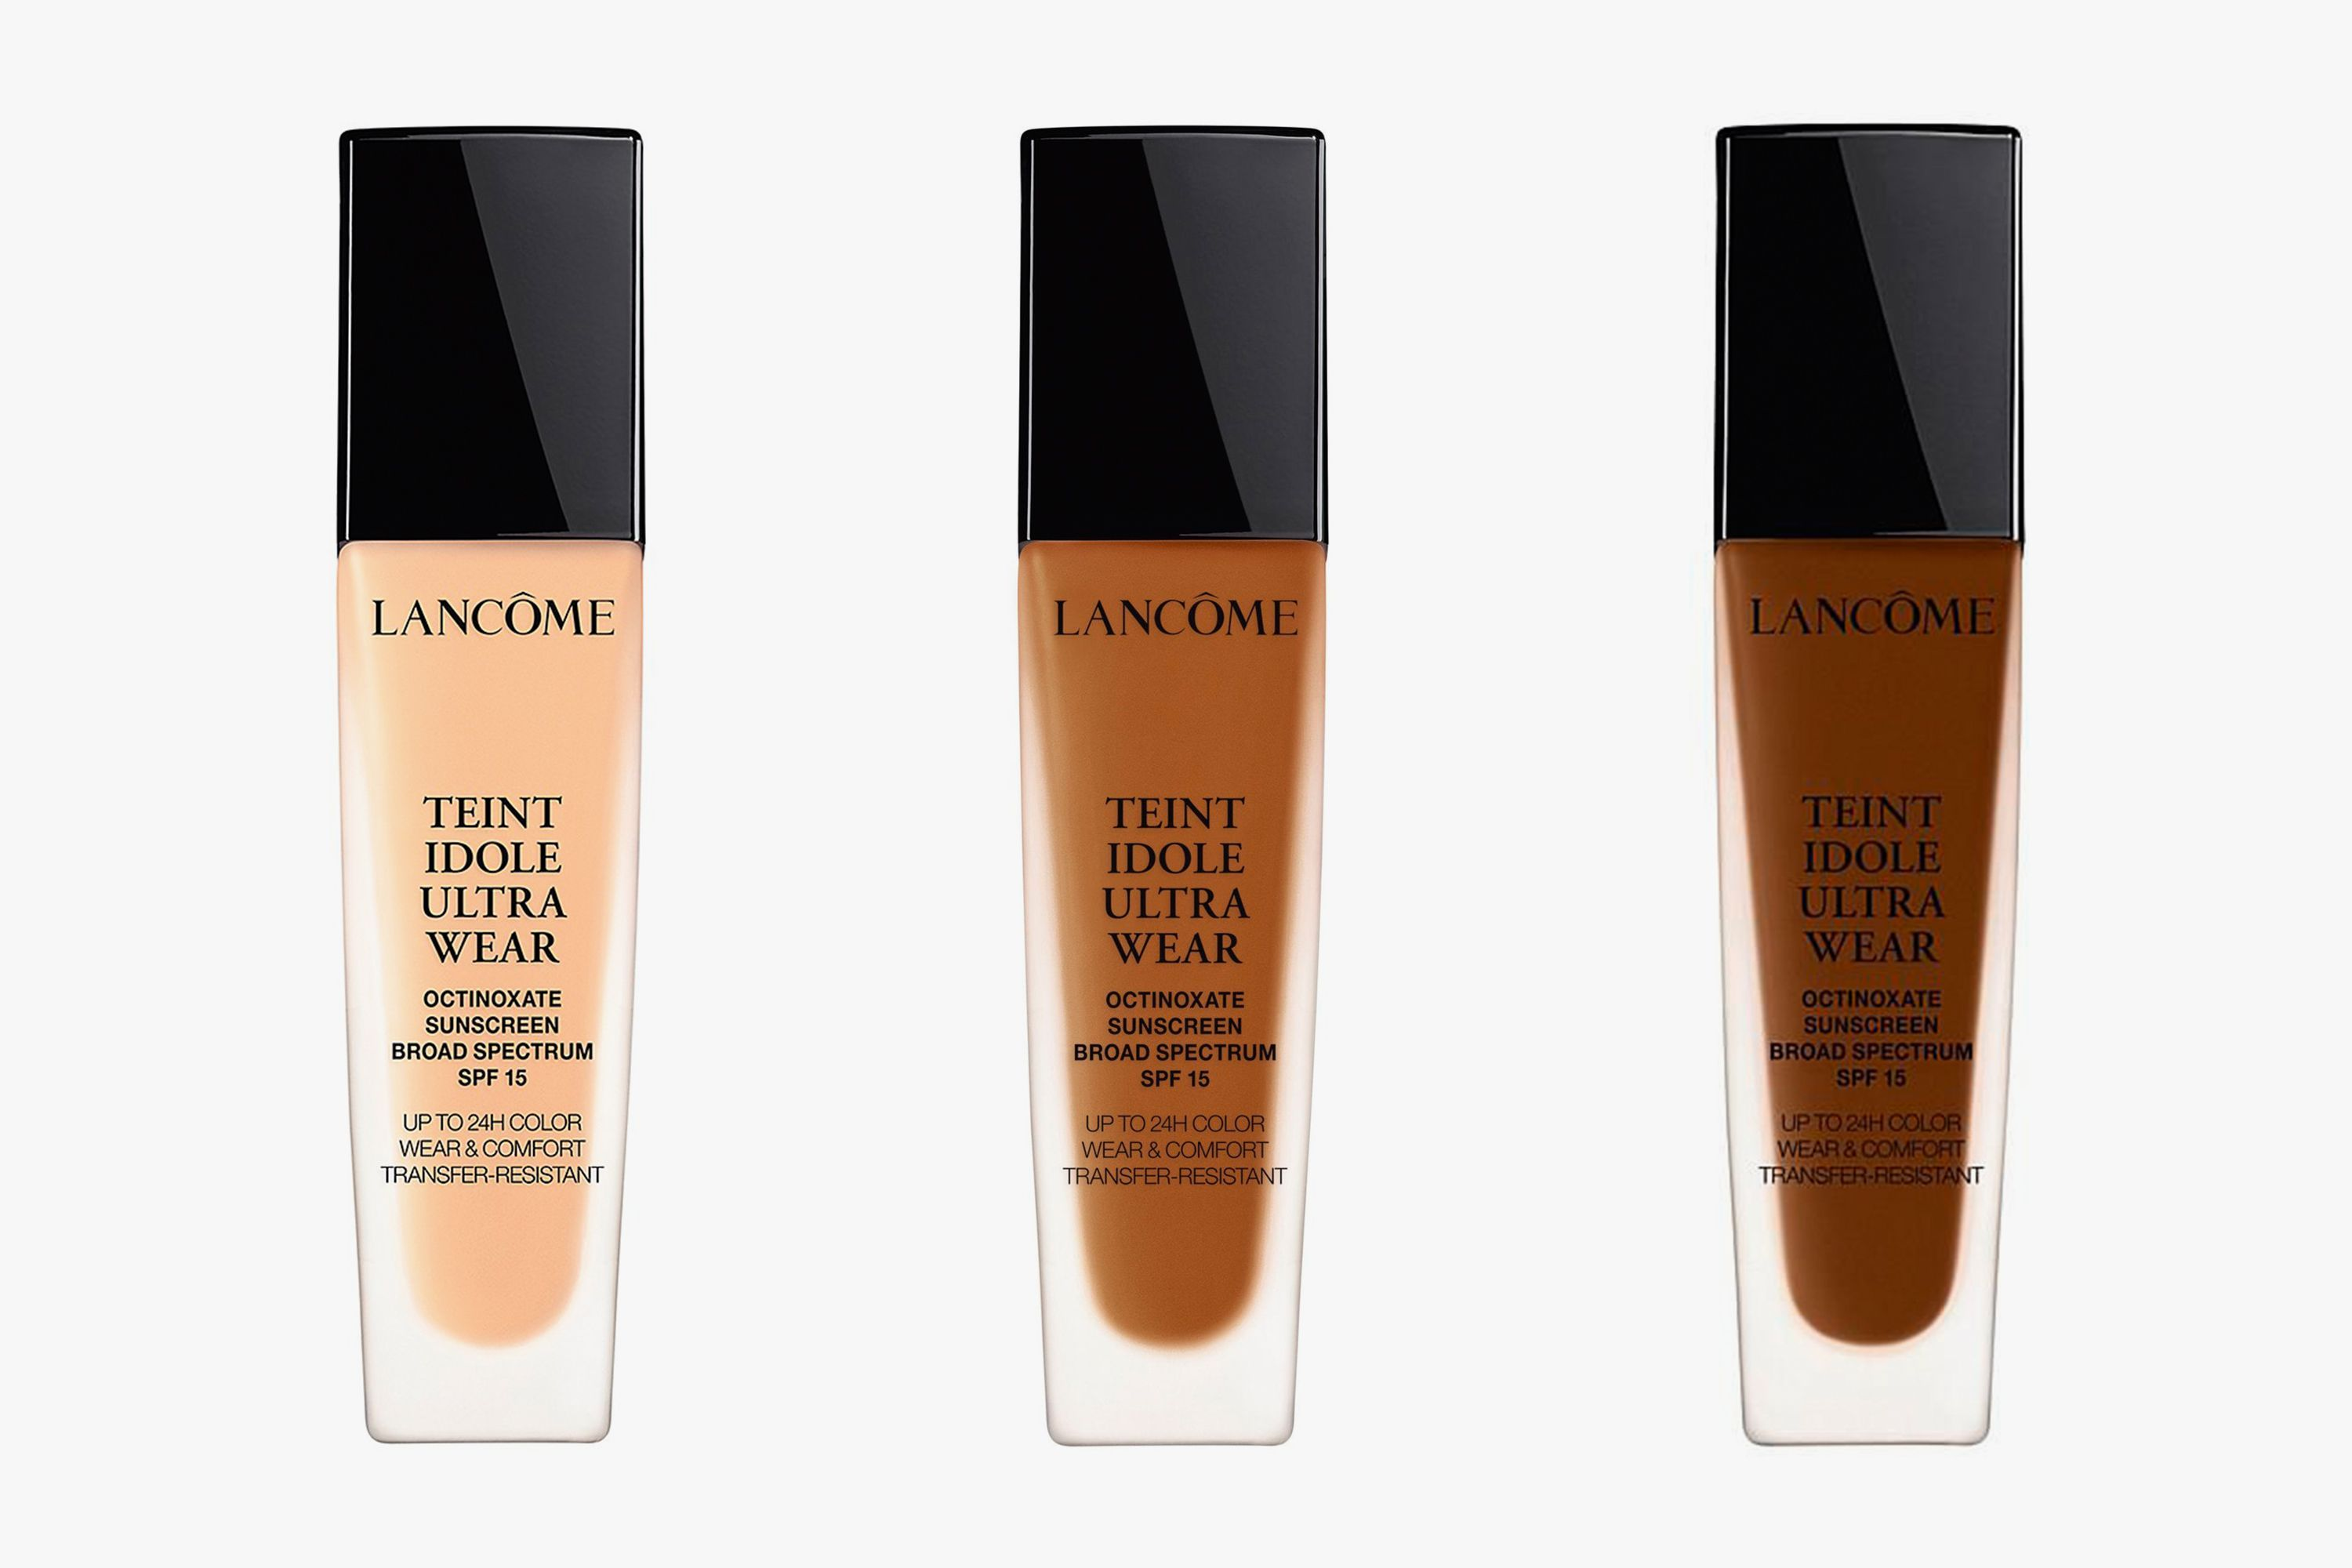 Lancôme Teint Idole Ultra Long Wear Foundation